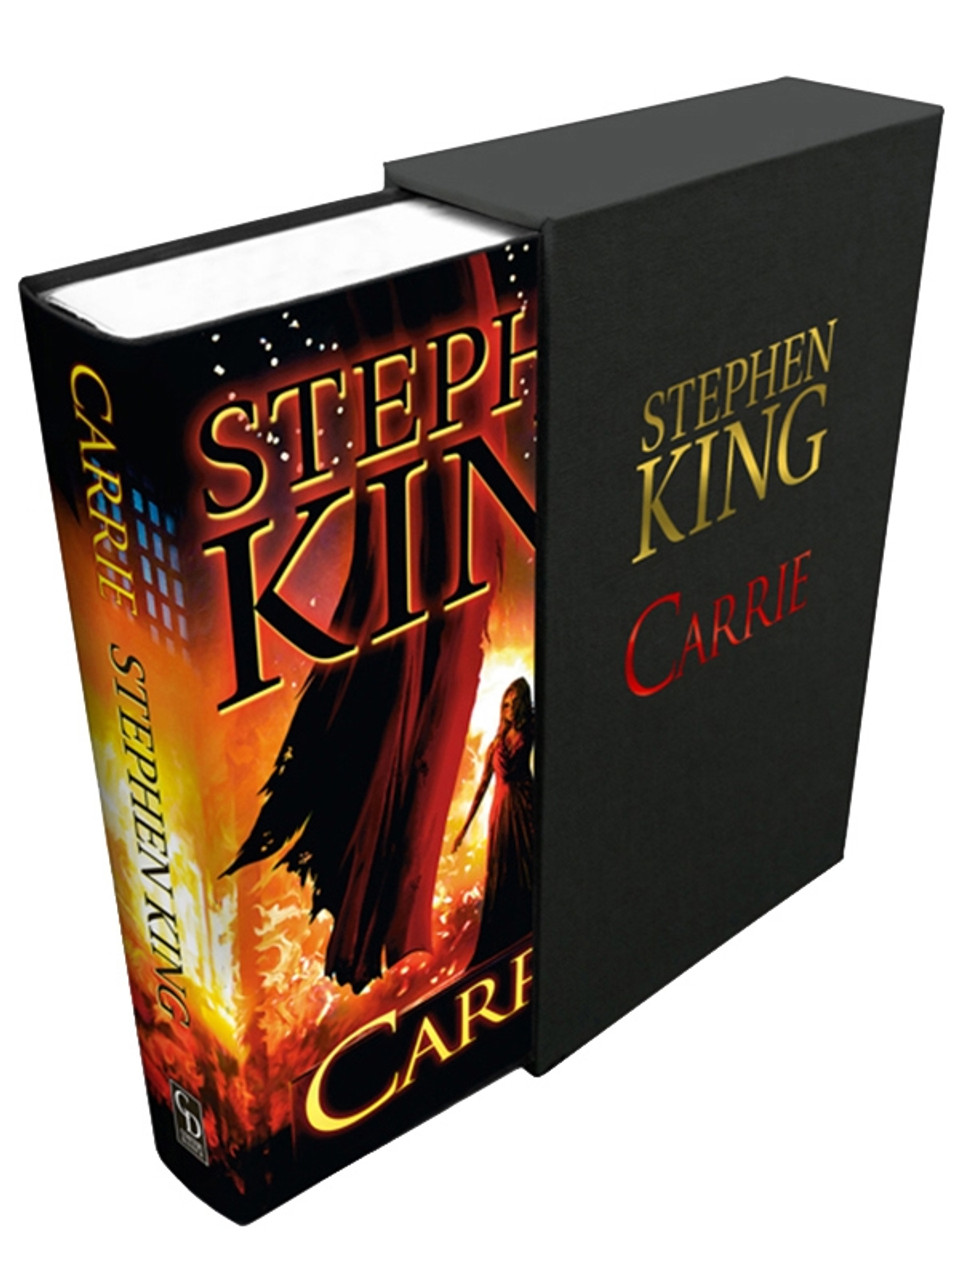 """Stephen King """"Carrie"""" Deluxe Limited Gift Edition, Slipcased [Sealed]"""